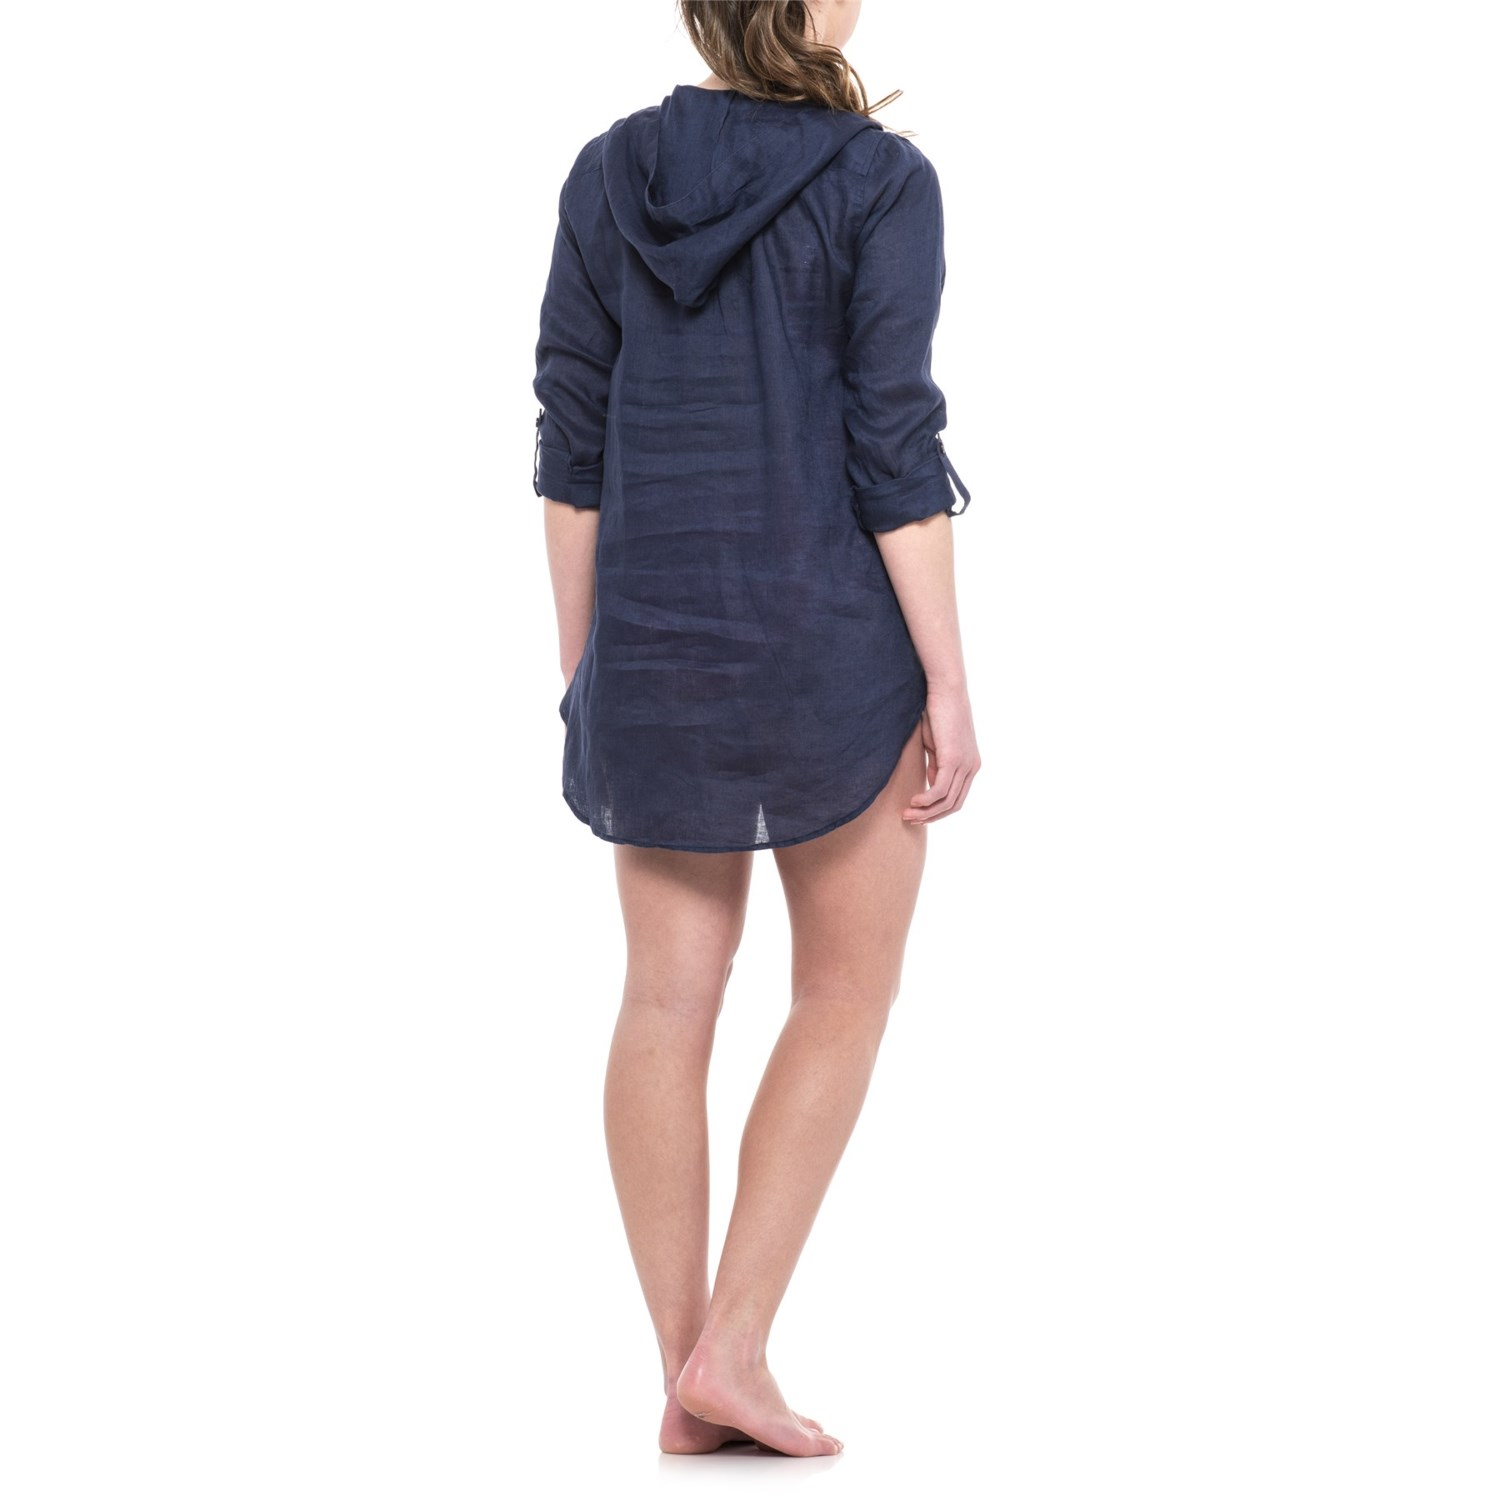 d5302ab8f9 Forcynthia Beachwear Linen Hooded Cover-Up - Long Sleeve (For Women)